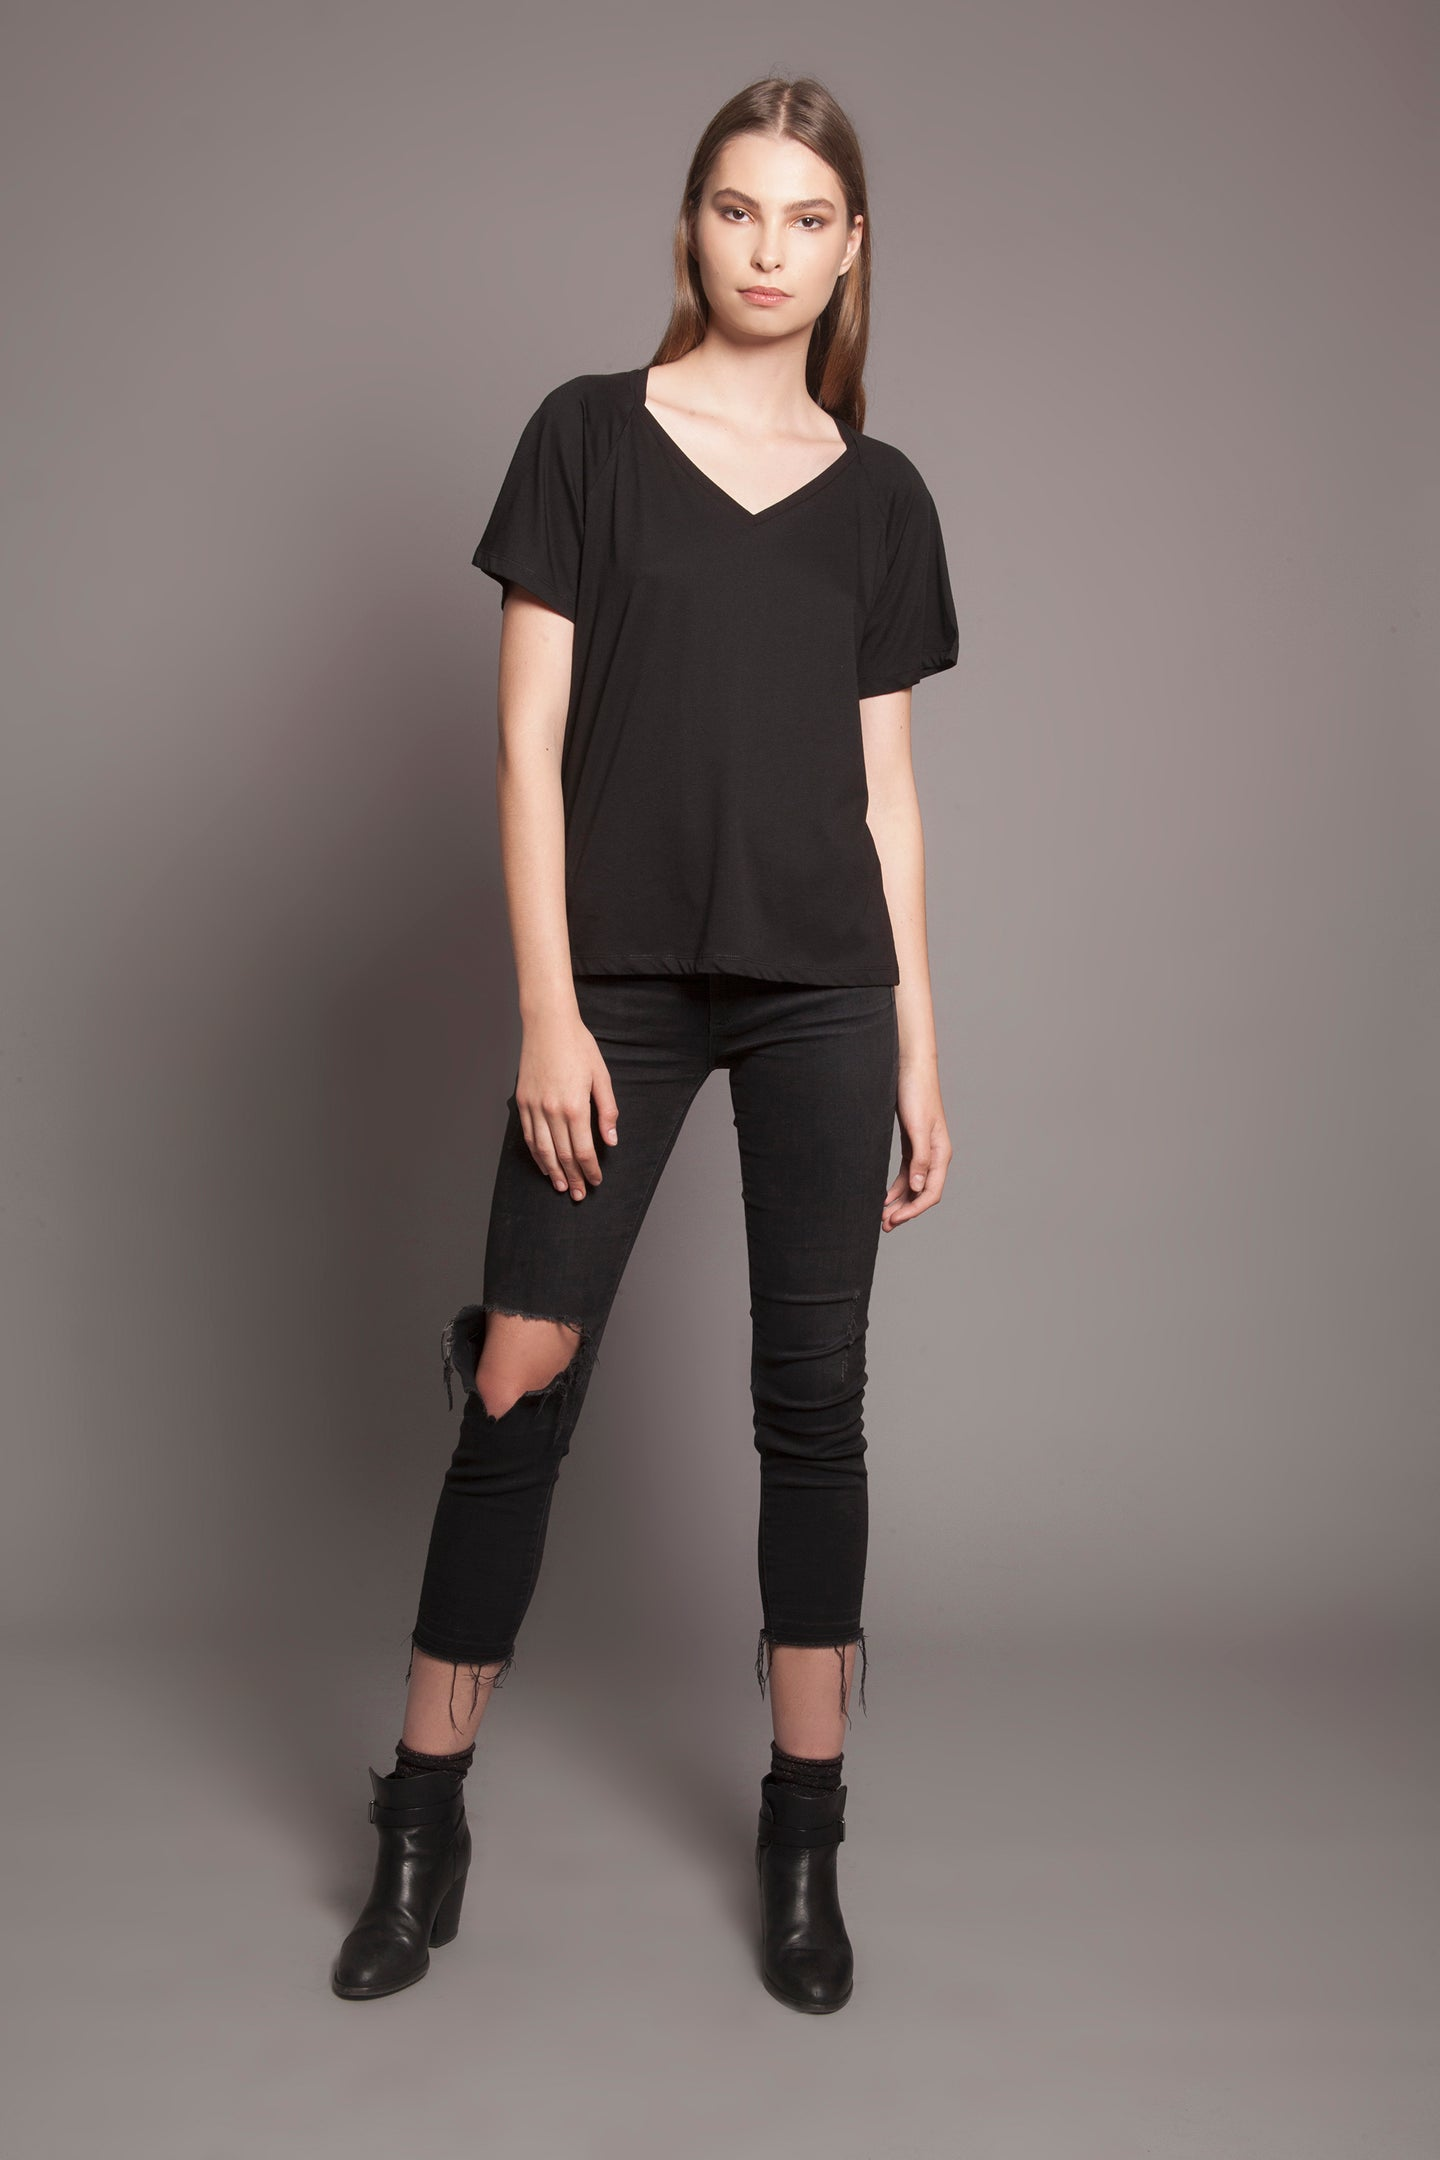 Collar Bone Tee Black